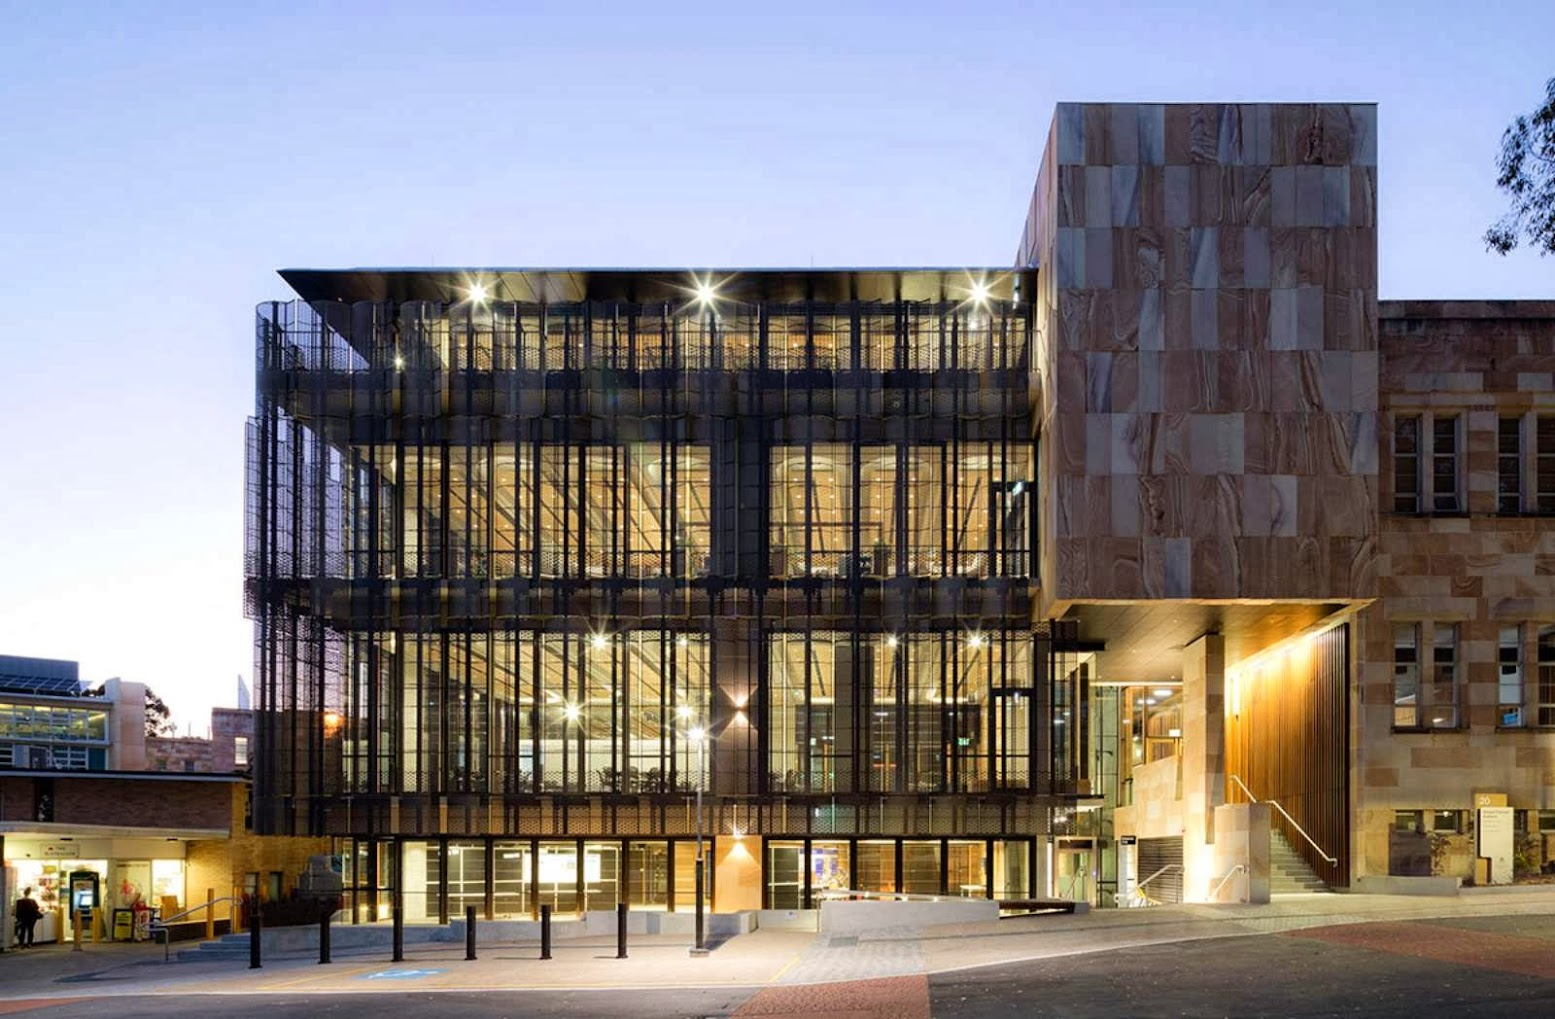 University of Queensland Global Change Institute by HASSELL